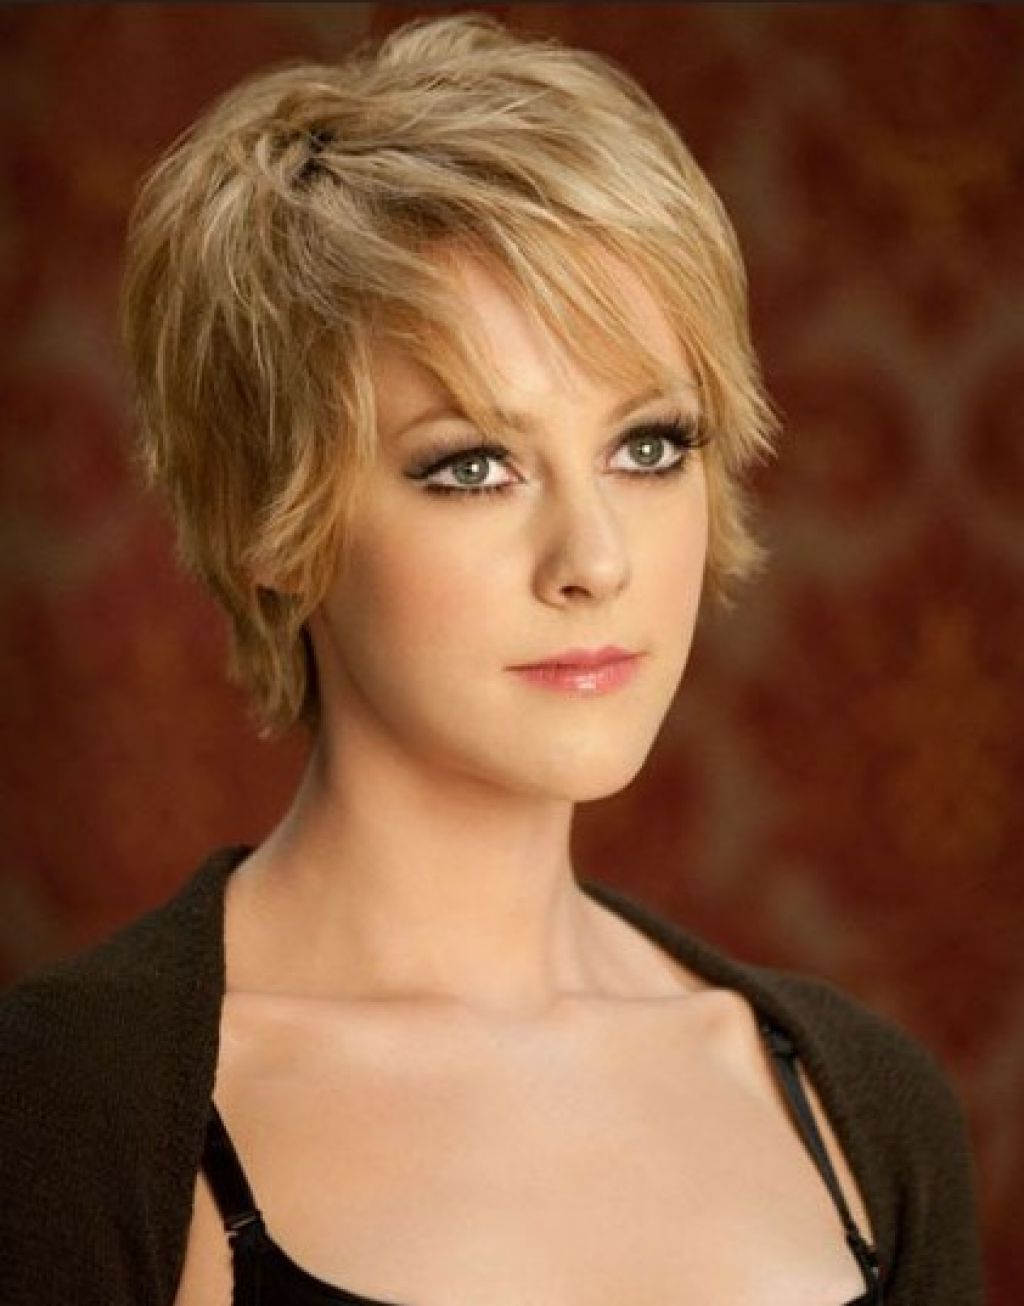 25 Best Hairstyles For Fine Hair Women's – The Xerxes In Trendy Short Haircuts For Fine Hair (View 18 of 25)